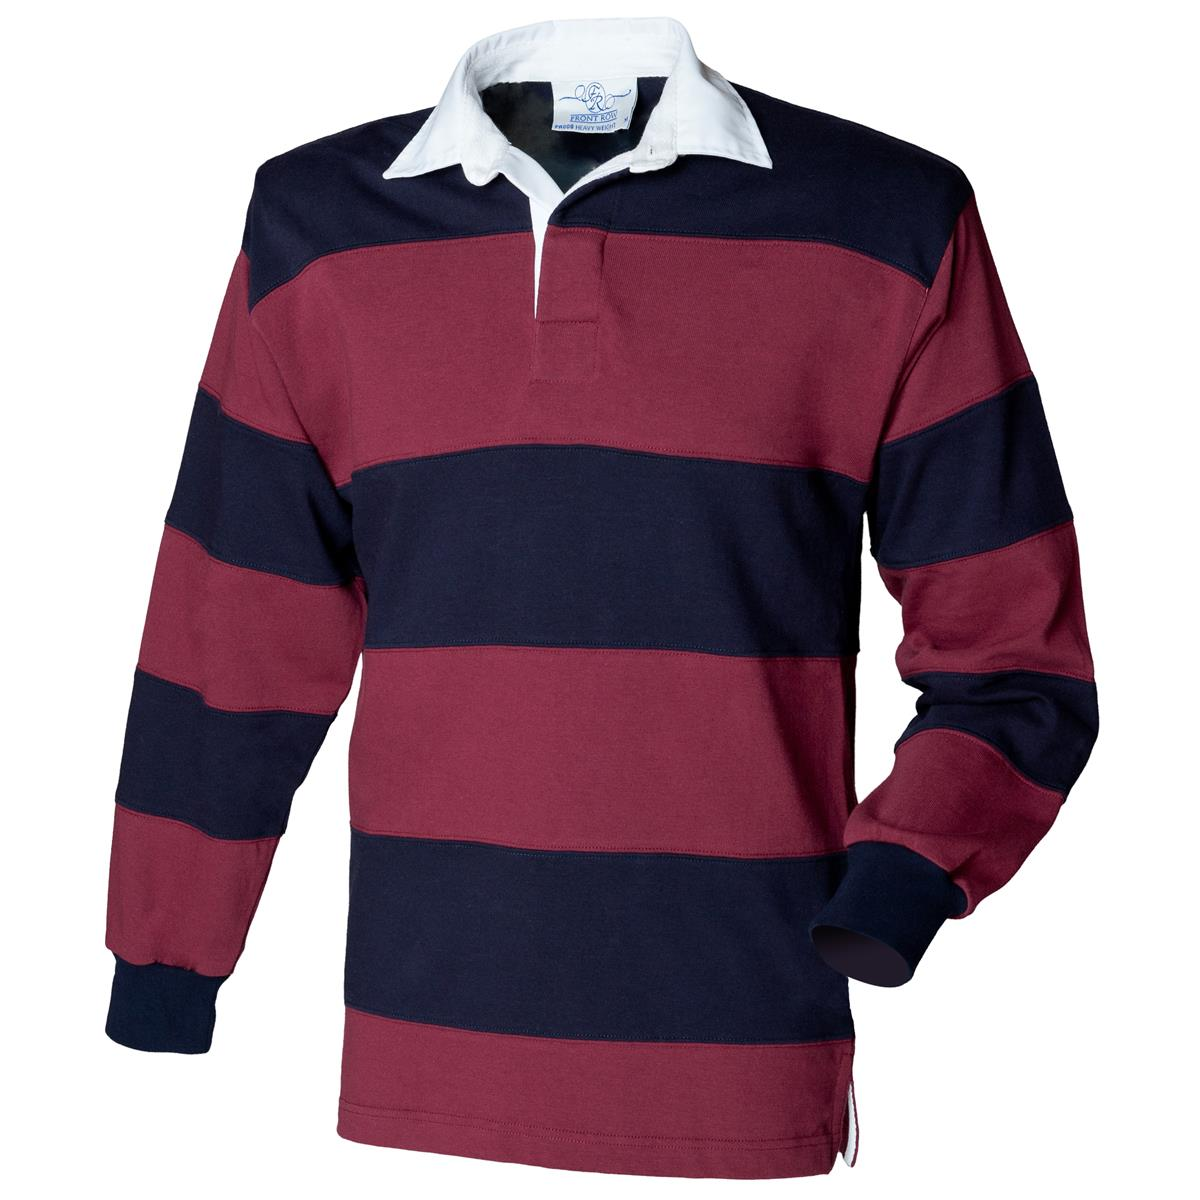 6626bb8c Men Sewn Stripe Long Sleeve Rugby Shirt Traditional Collar Casual ...